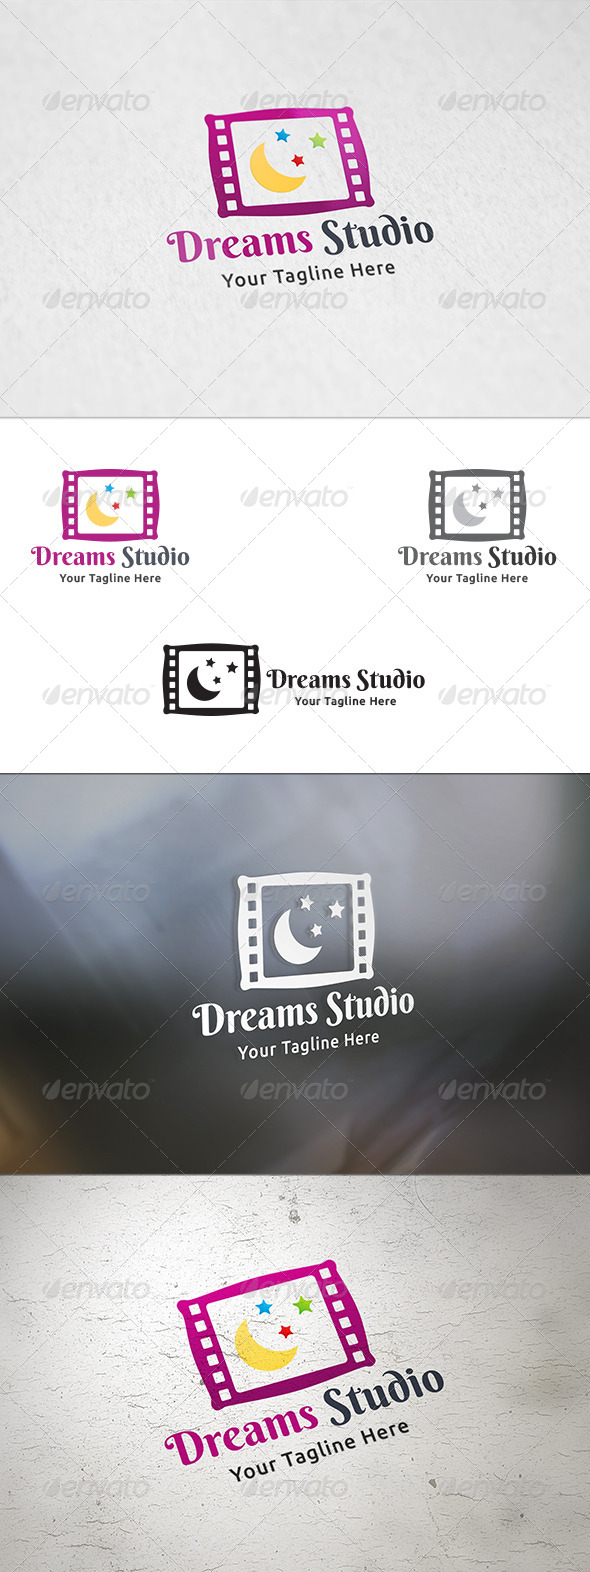 GraphicRiver Dreams Studio Logo Template 8434487